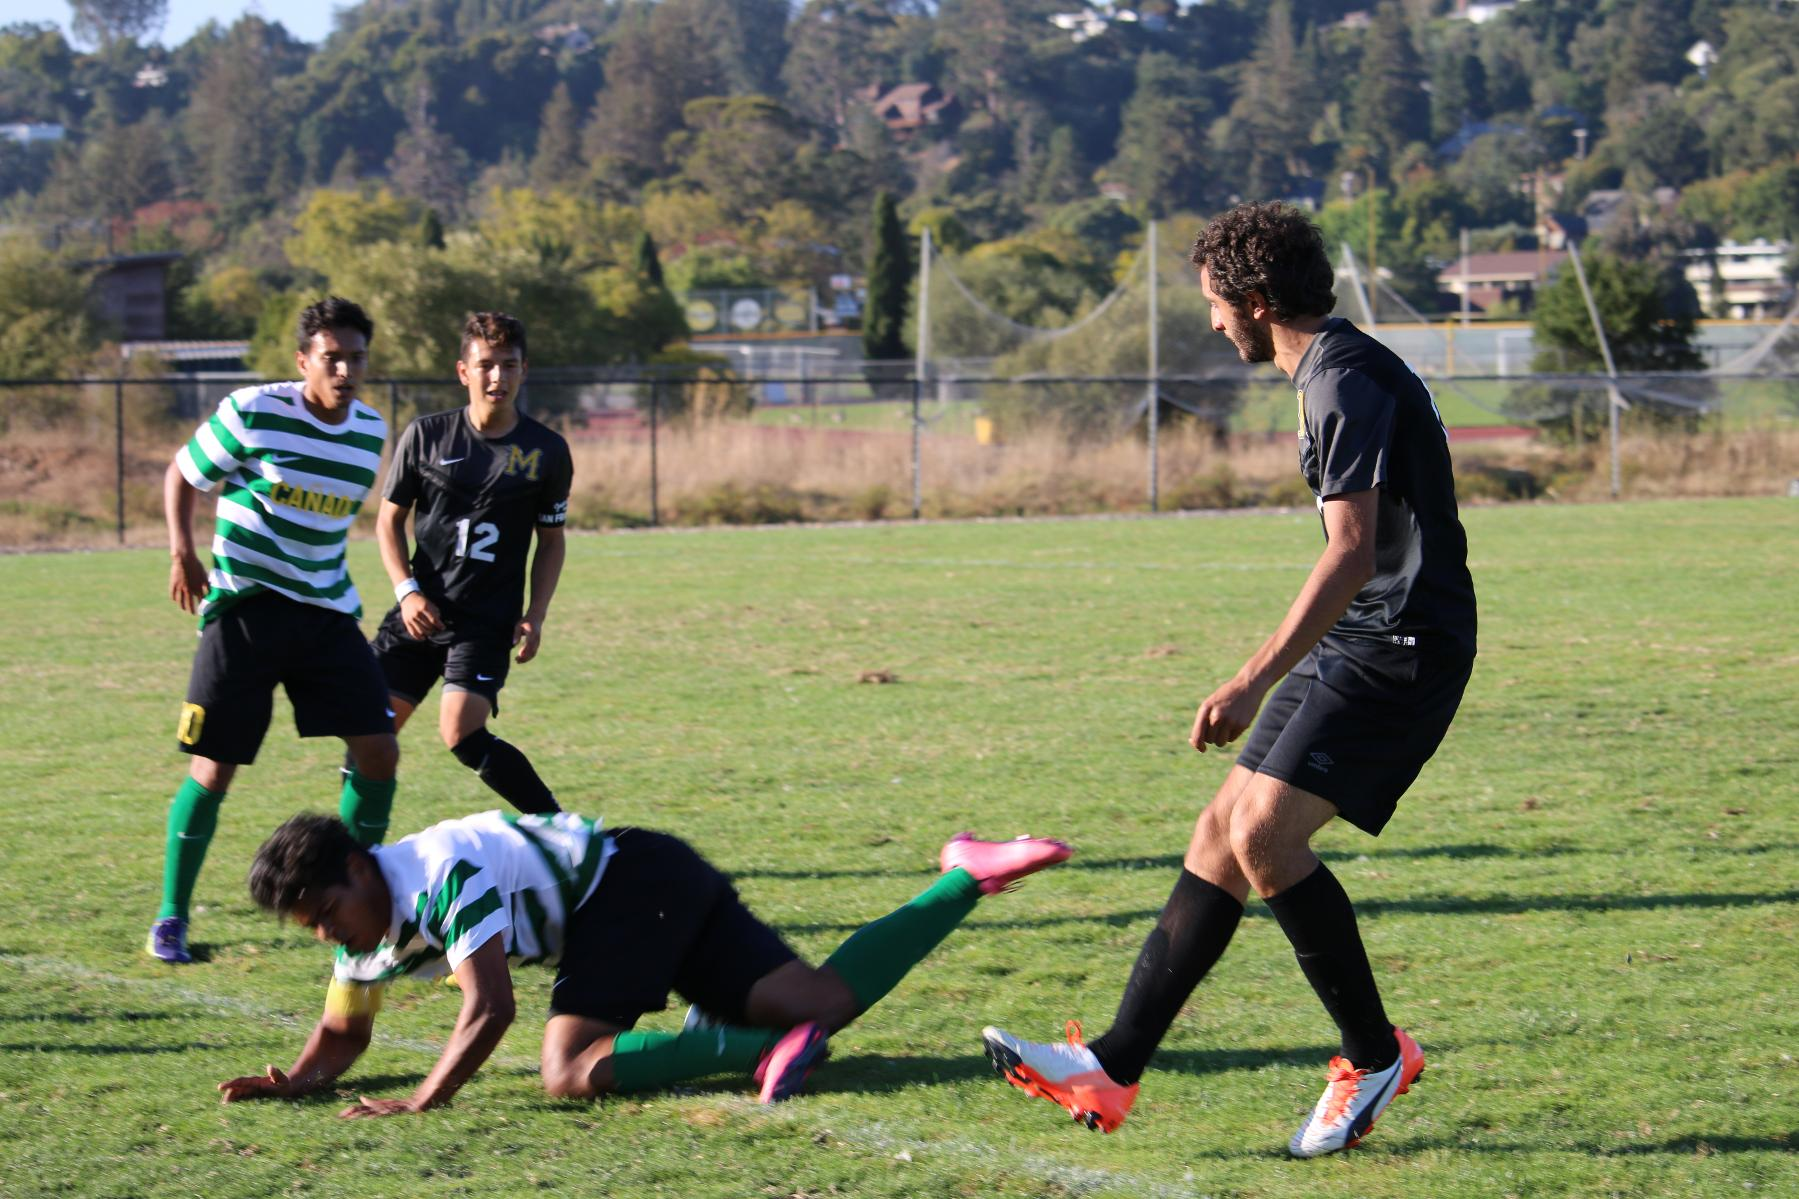 College of Marin Men's Soccer Grabs First Win of Season Over Siskiyous 2-0